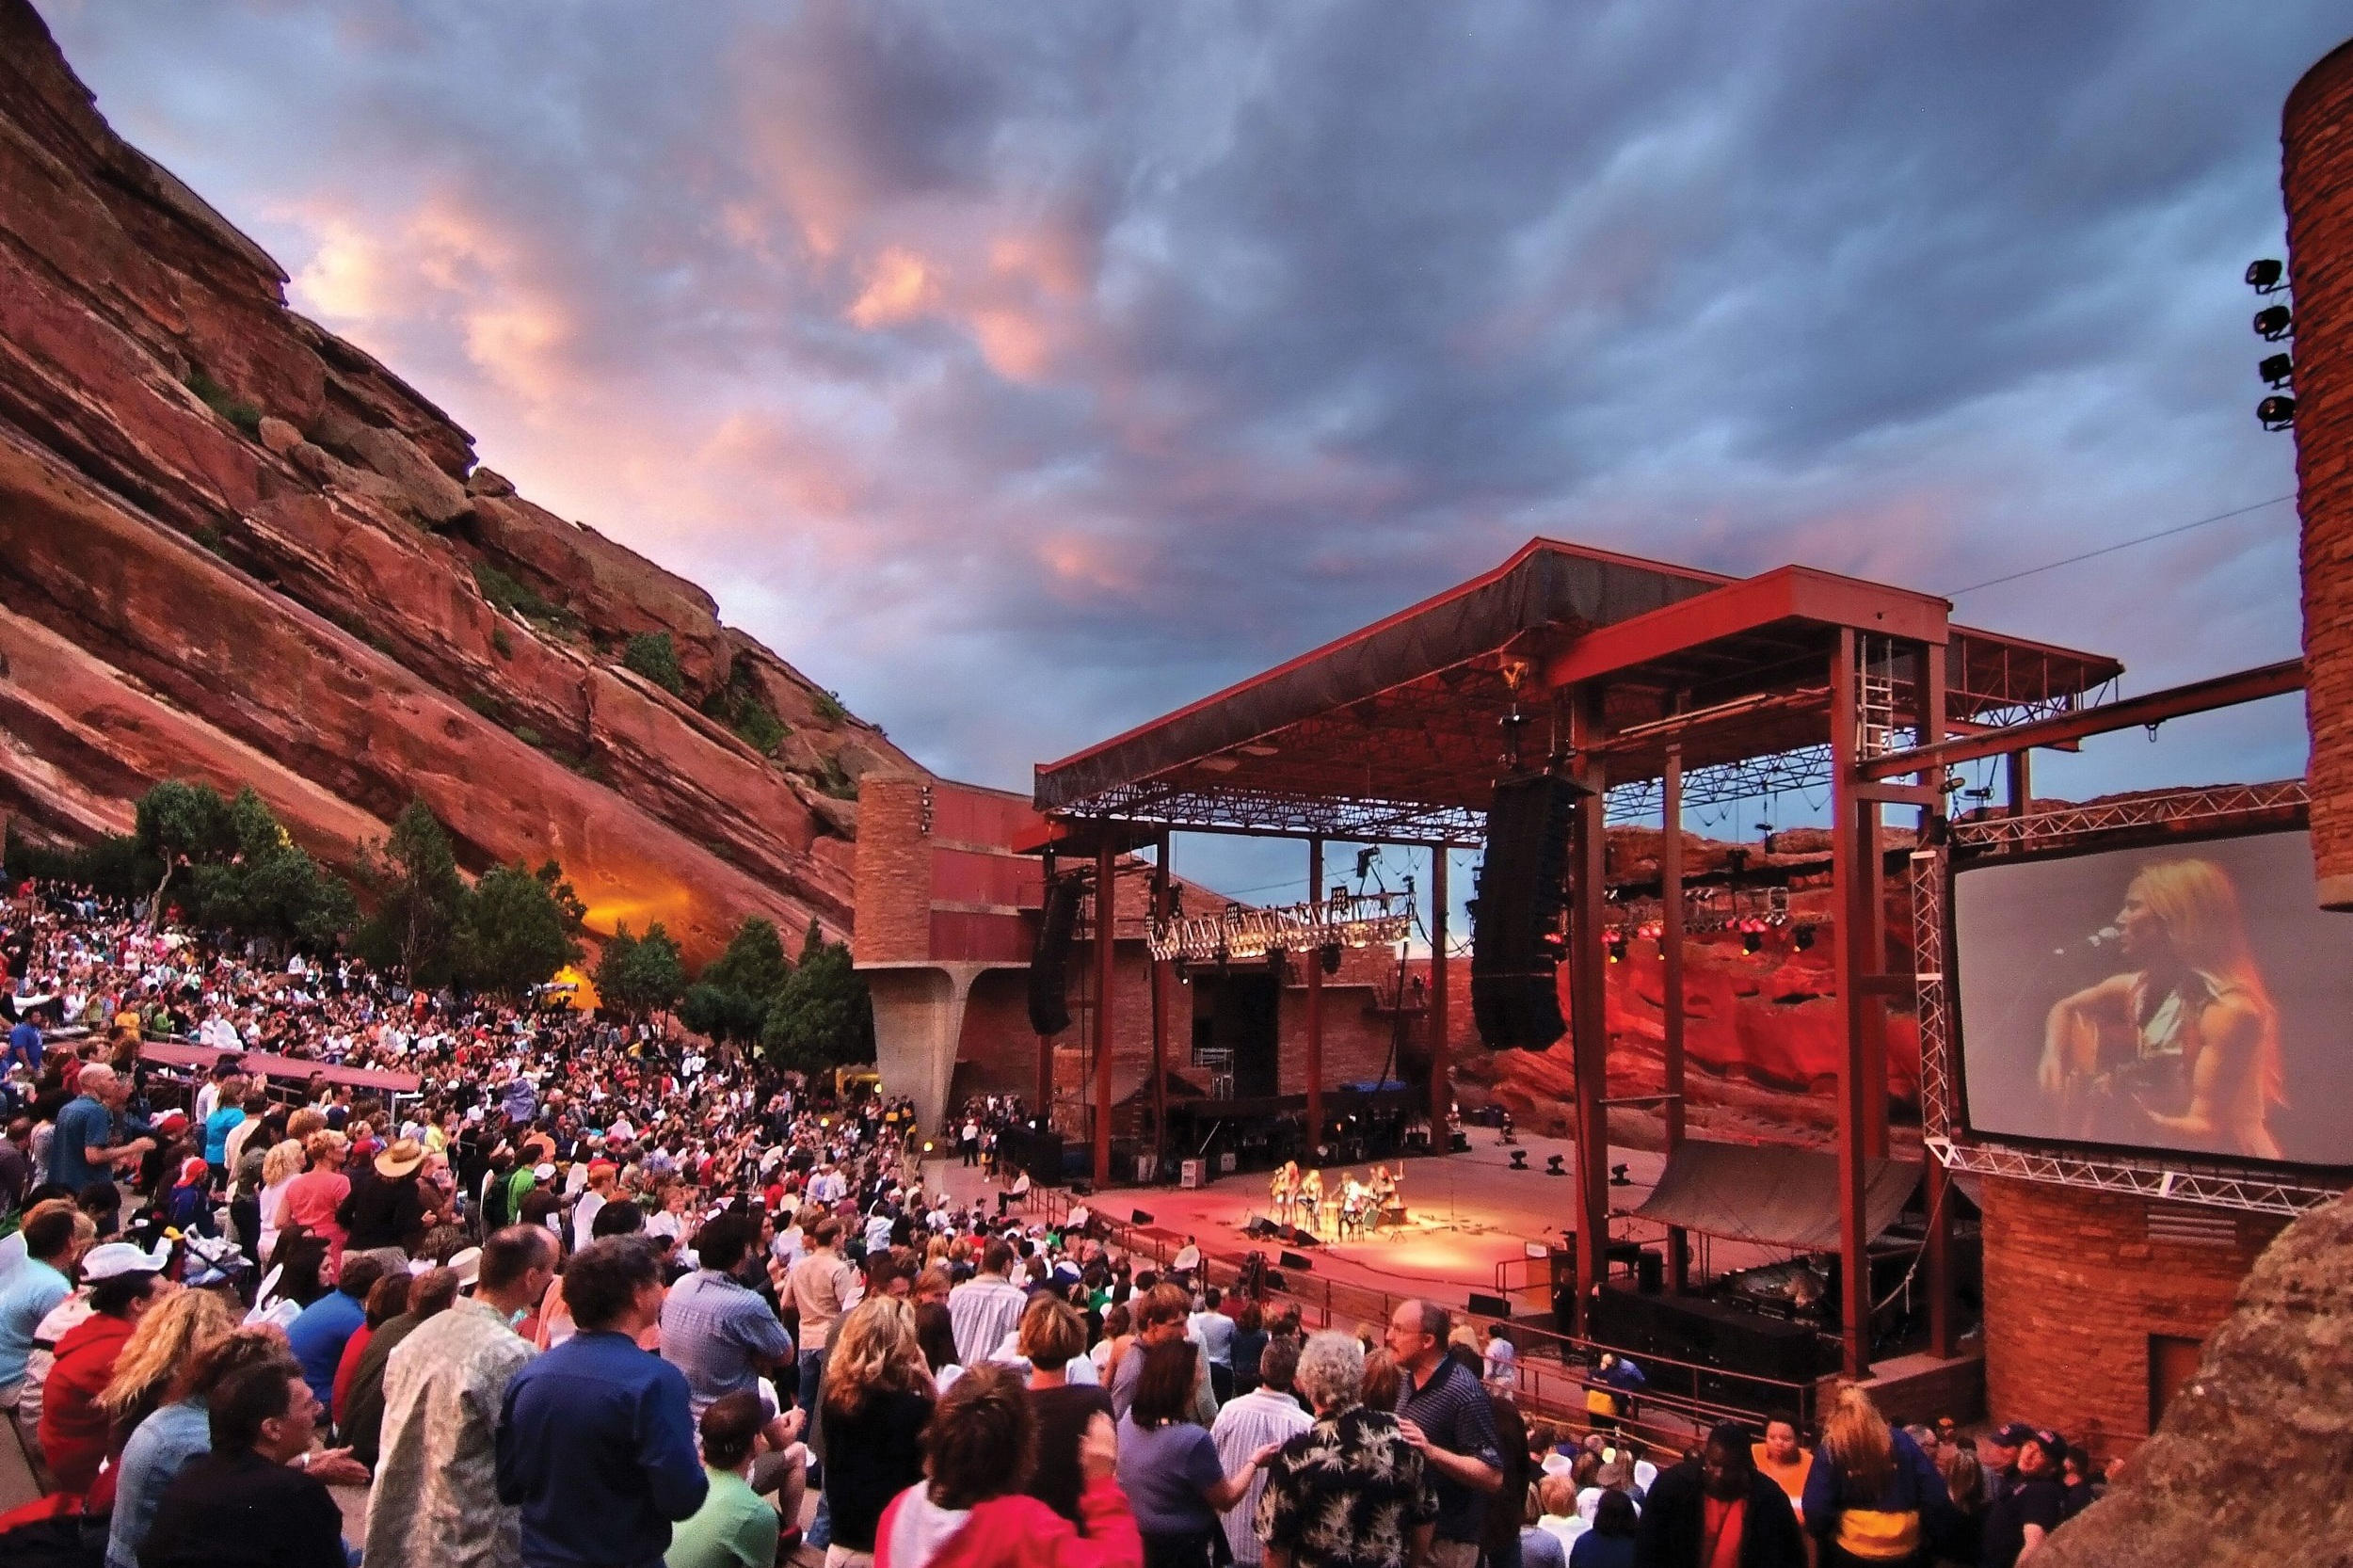 Red Rocks Amphitheatre will host our day 2 morning talks on the 25th September 2020.